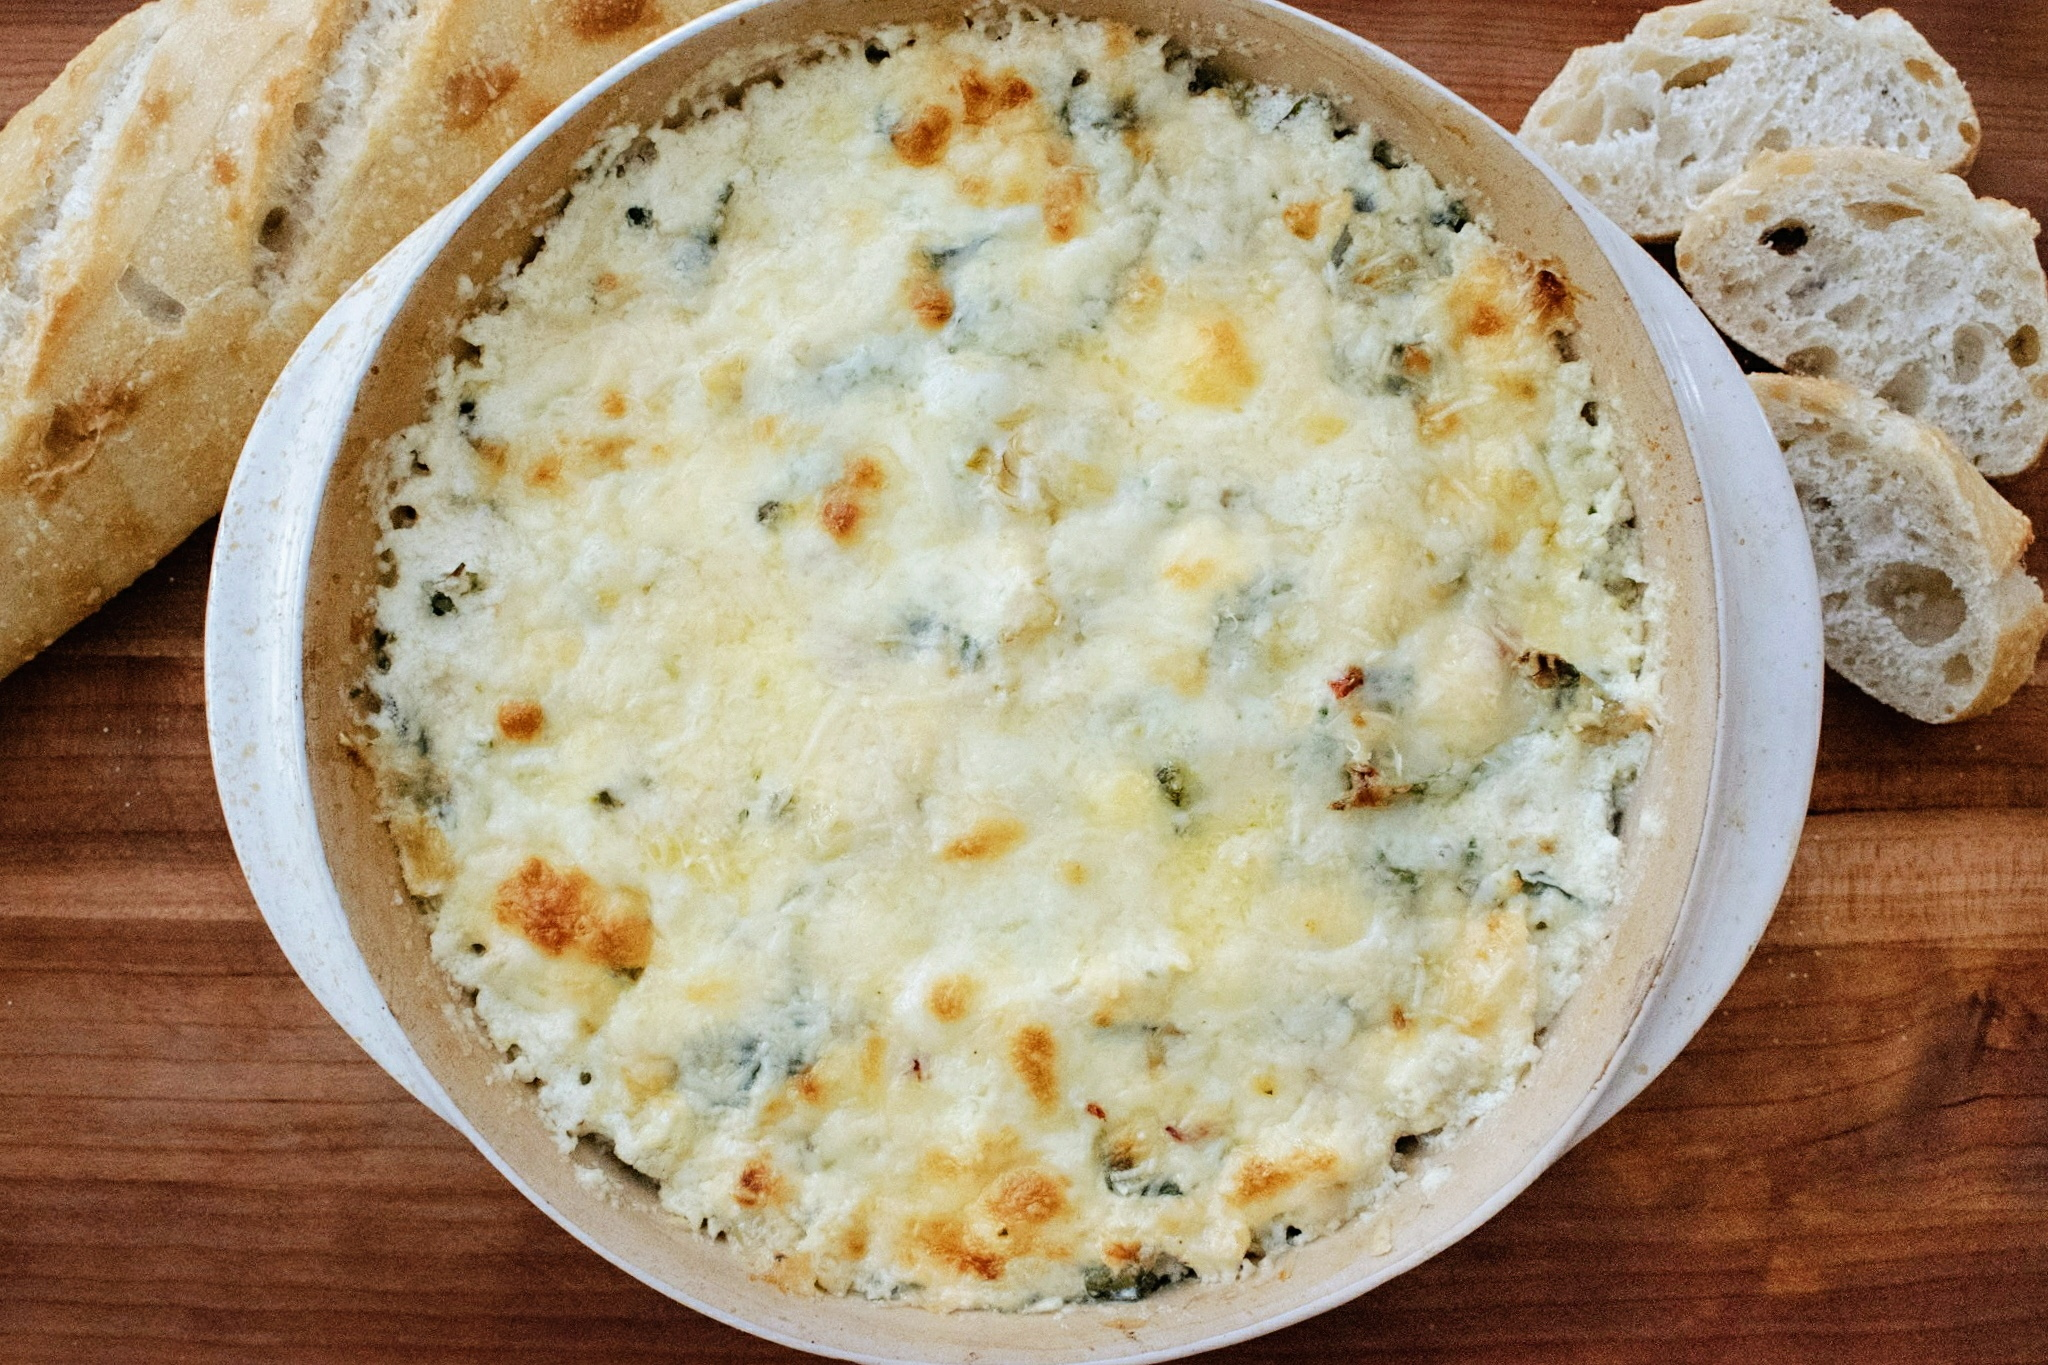 Baked Spinach Artichoke Dip with baguette